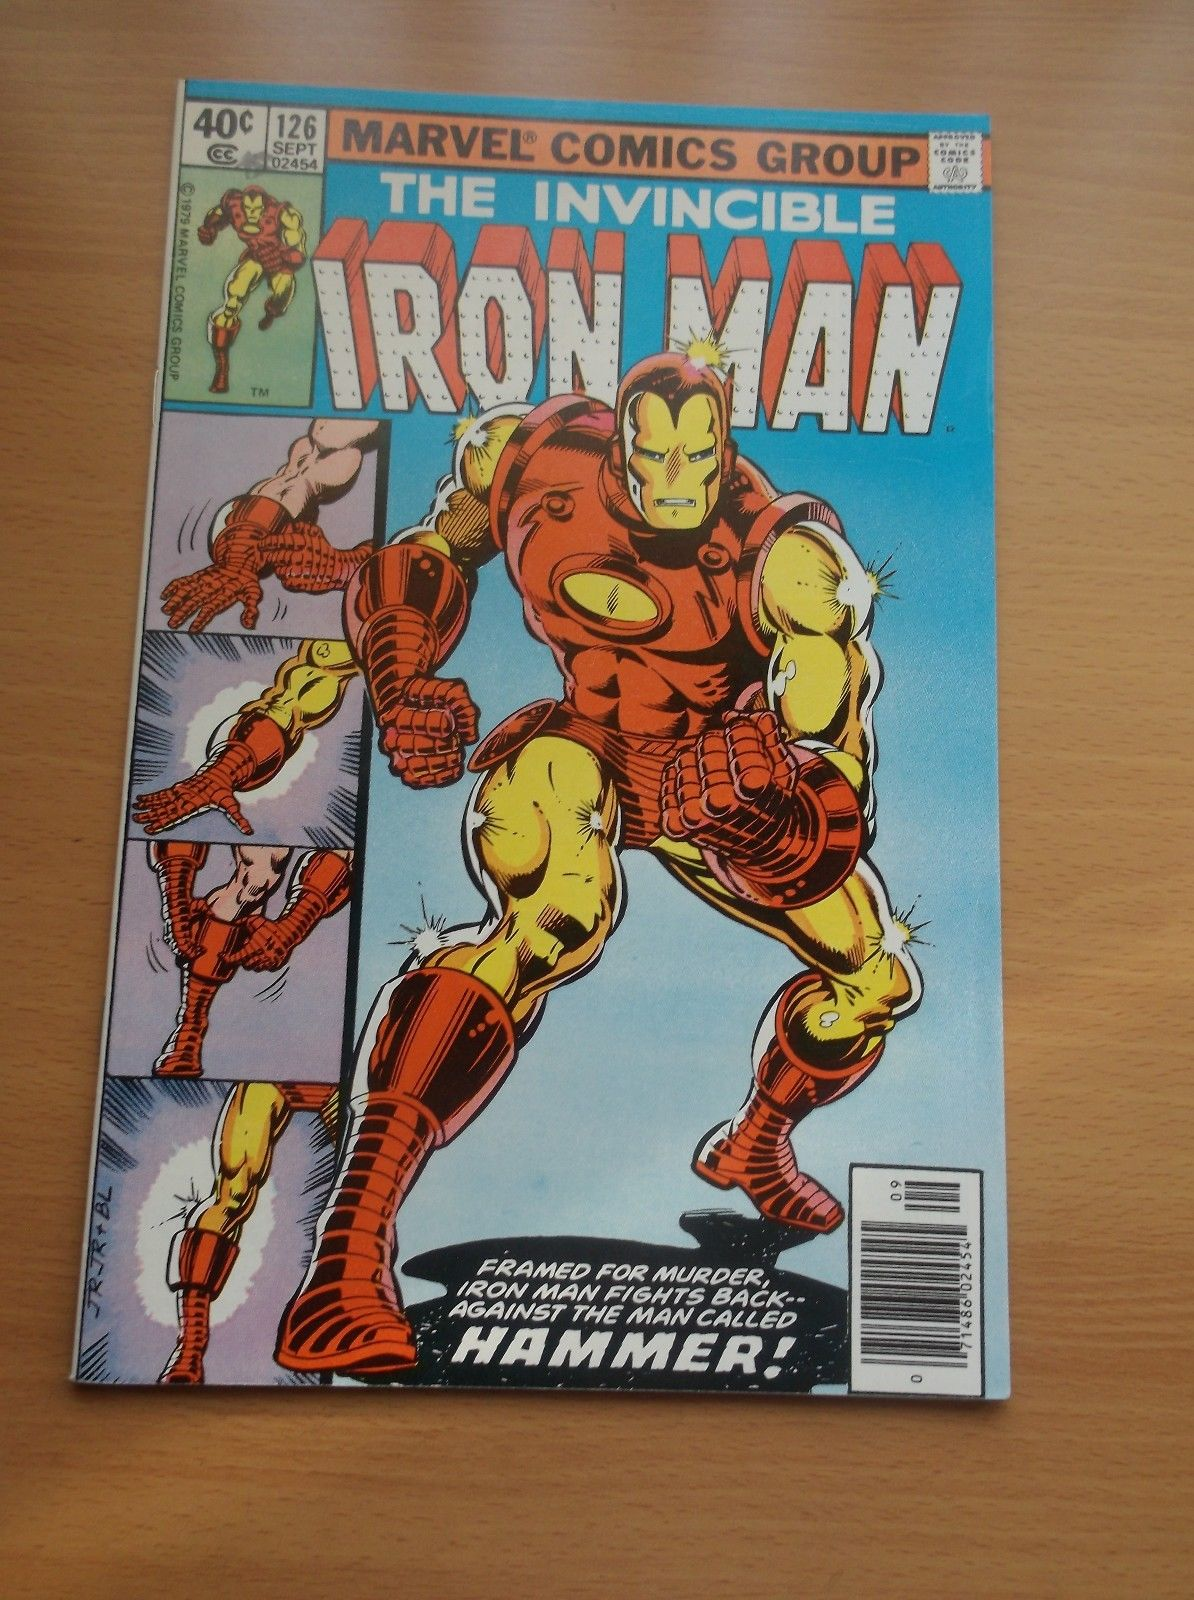 MARVEL: IRON MAN #126, CLASSIC STARK SUIT-UP AS IRON MAN COVER, 1979, VF/NM